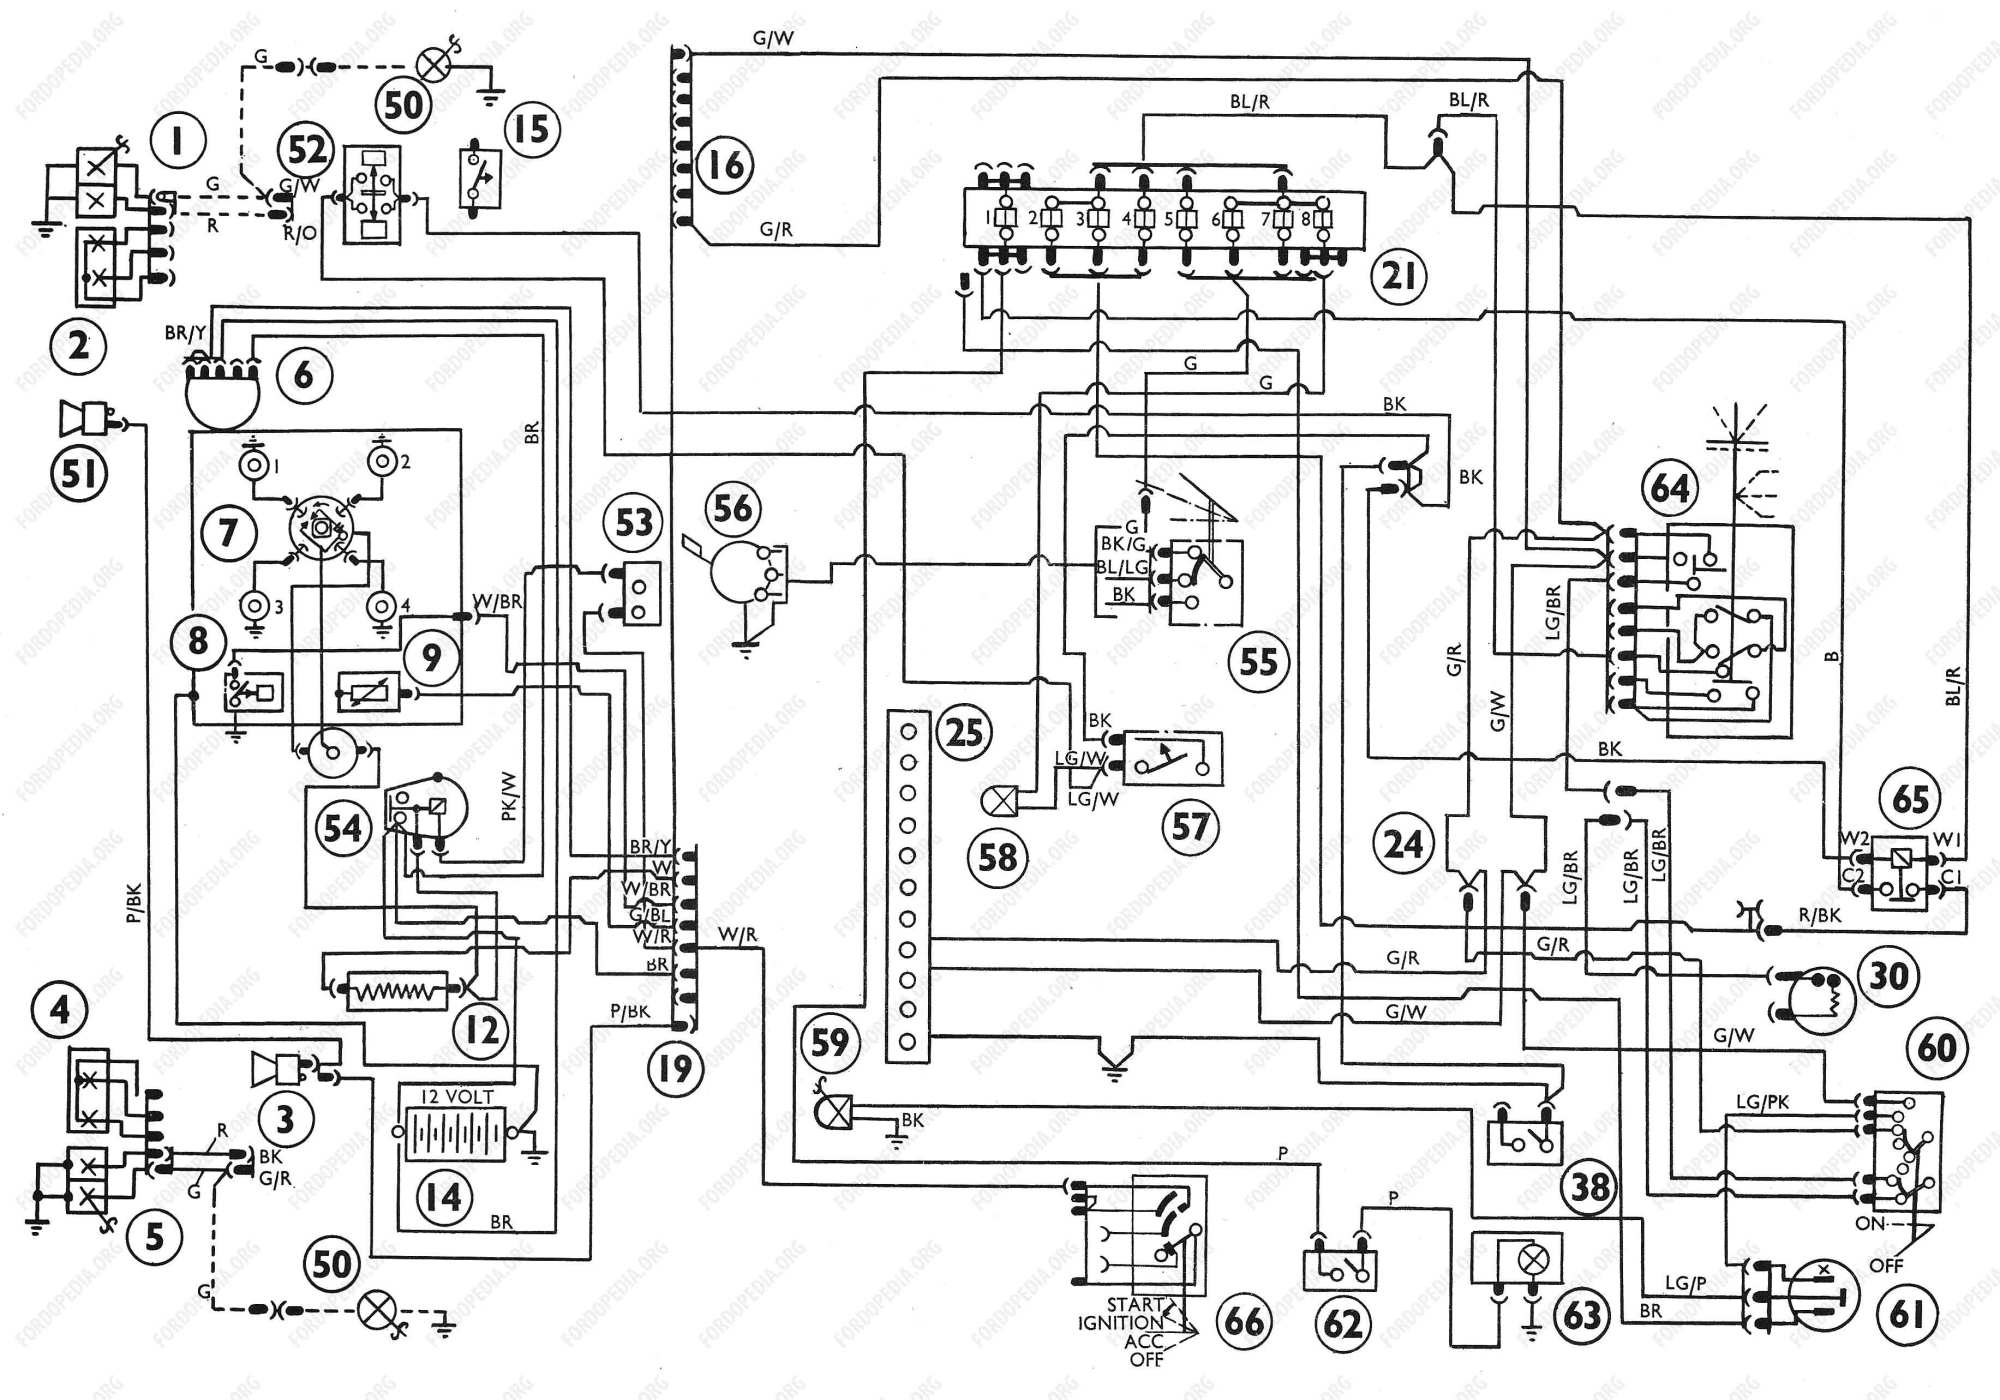 hight resolution of diagrams ford transit mki f o b 09 1970 onwards wiring